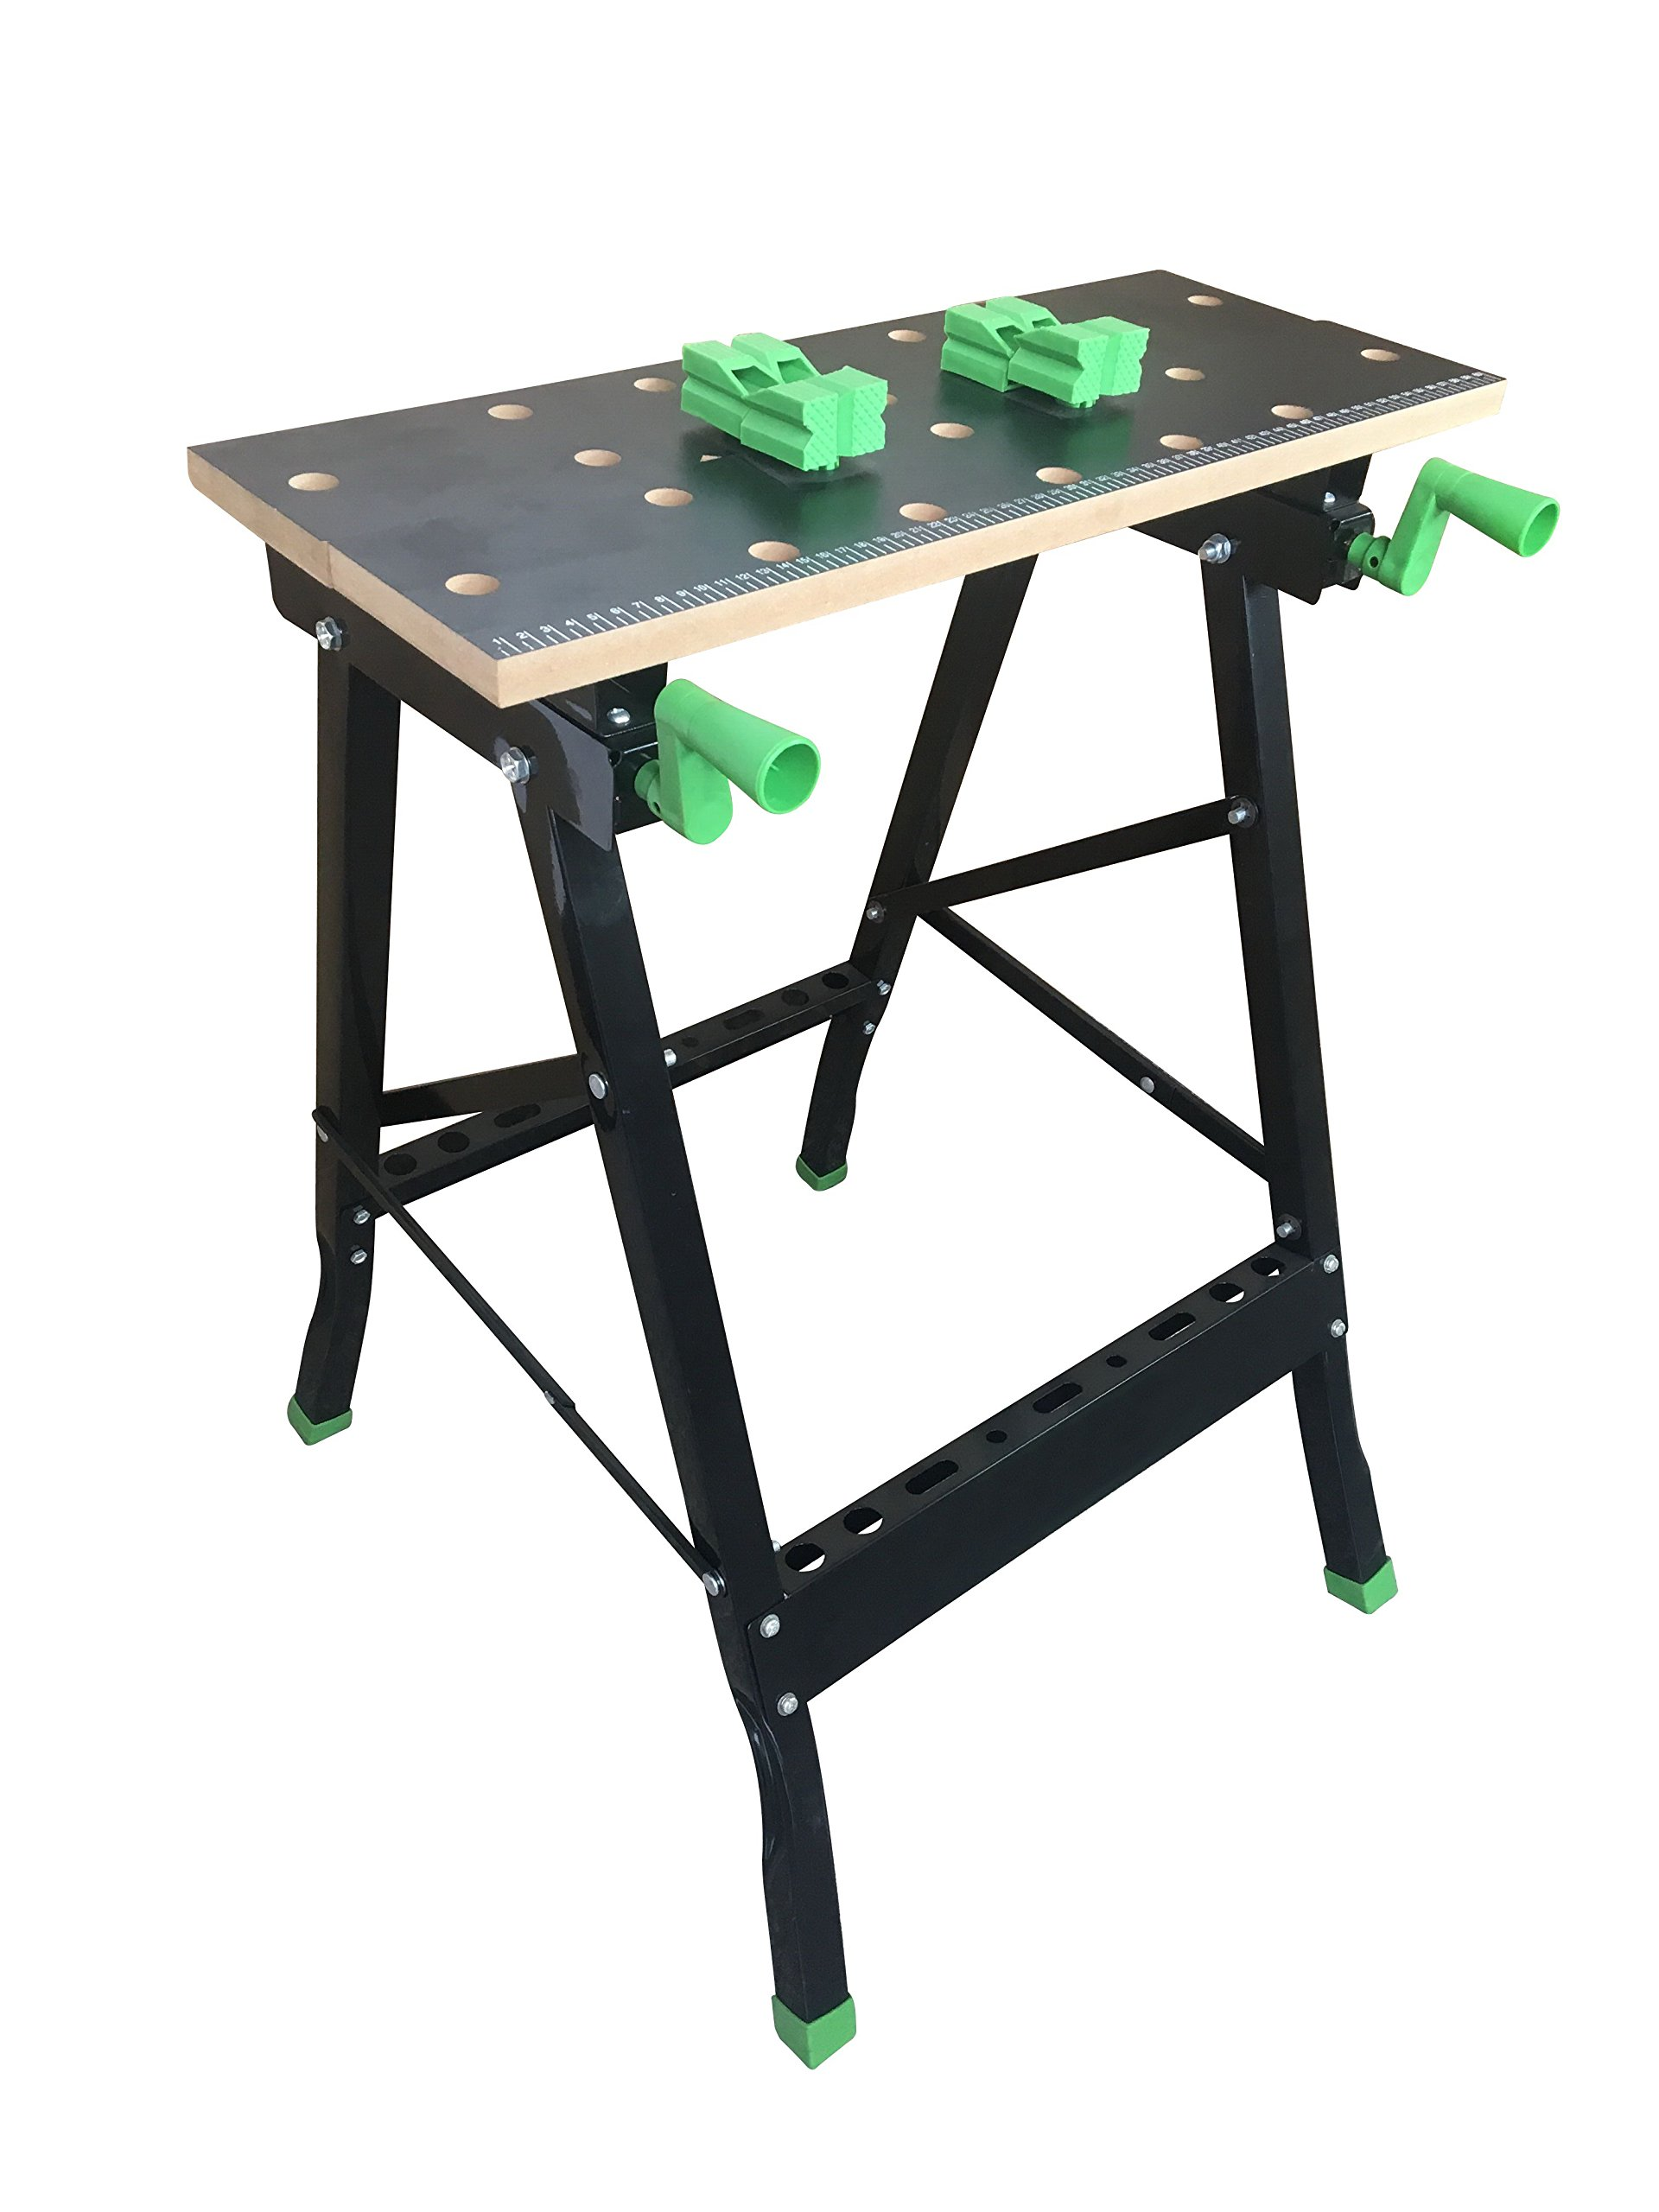 Folding Multipurpose Workmate Workbench Sawhorse With Clamp,Pegs and Tool Holders Tiltable Portable Work Table And Vise 350LBS Capacity